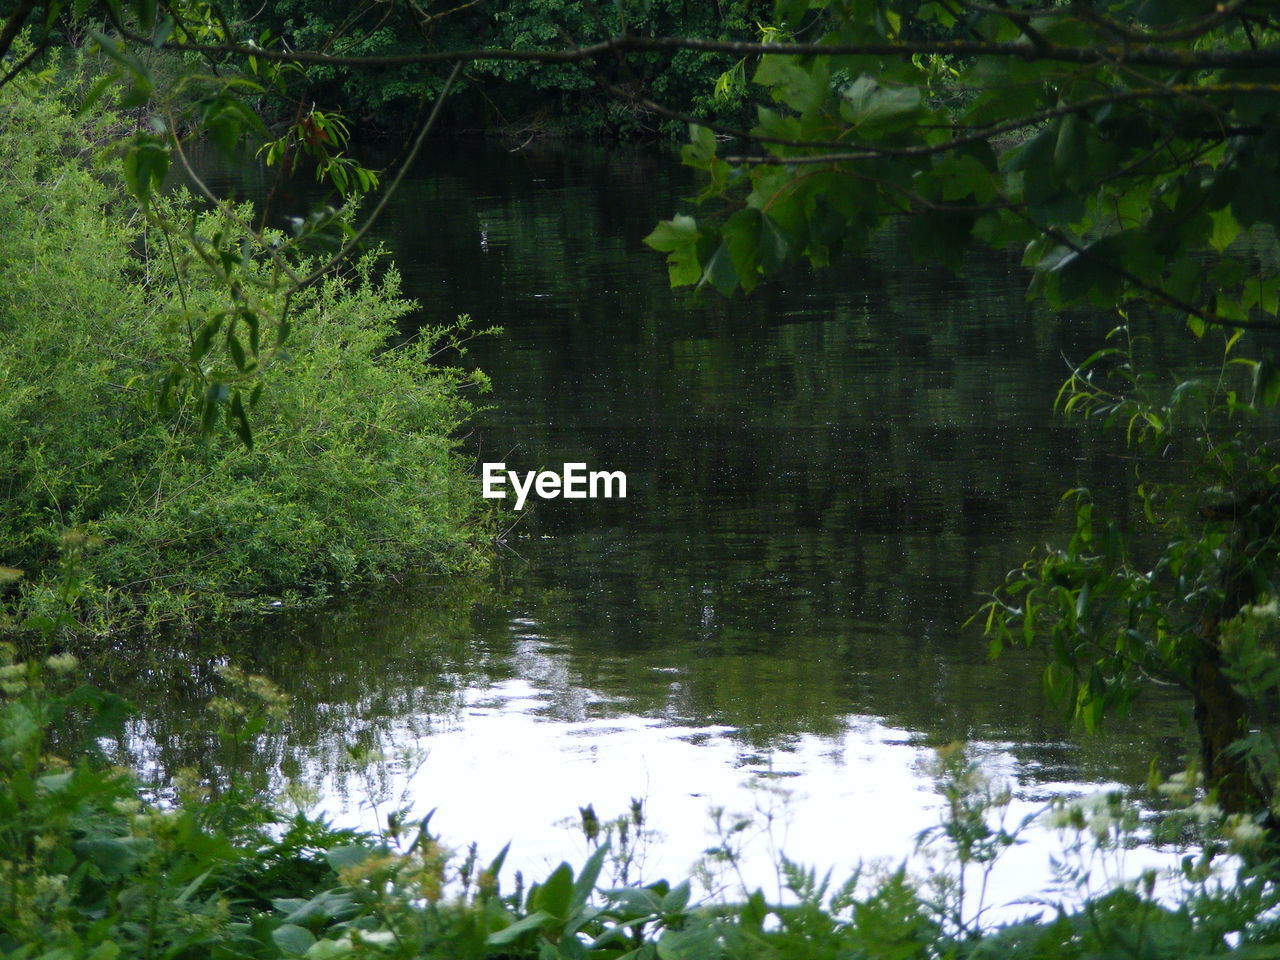 growth, nature, plant, reflection, forest, vegetation, outdoors, foliage, adventure, no people, tree, water, day